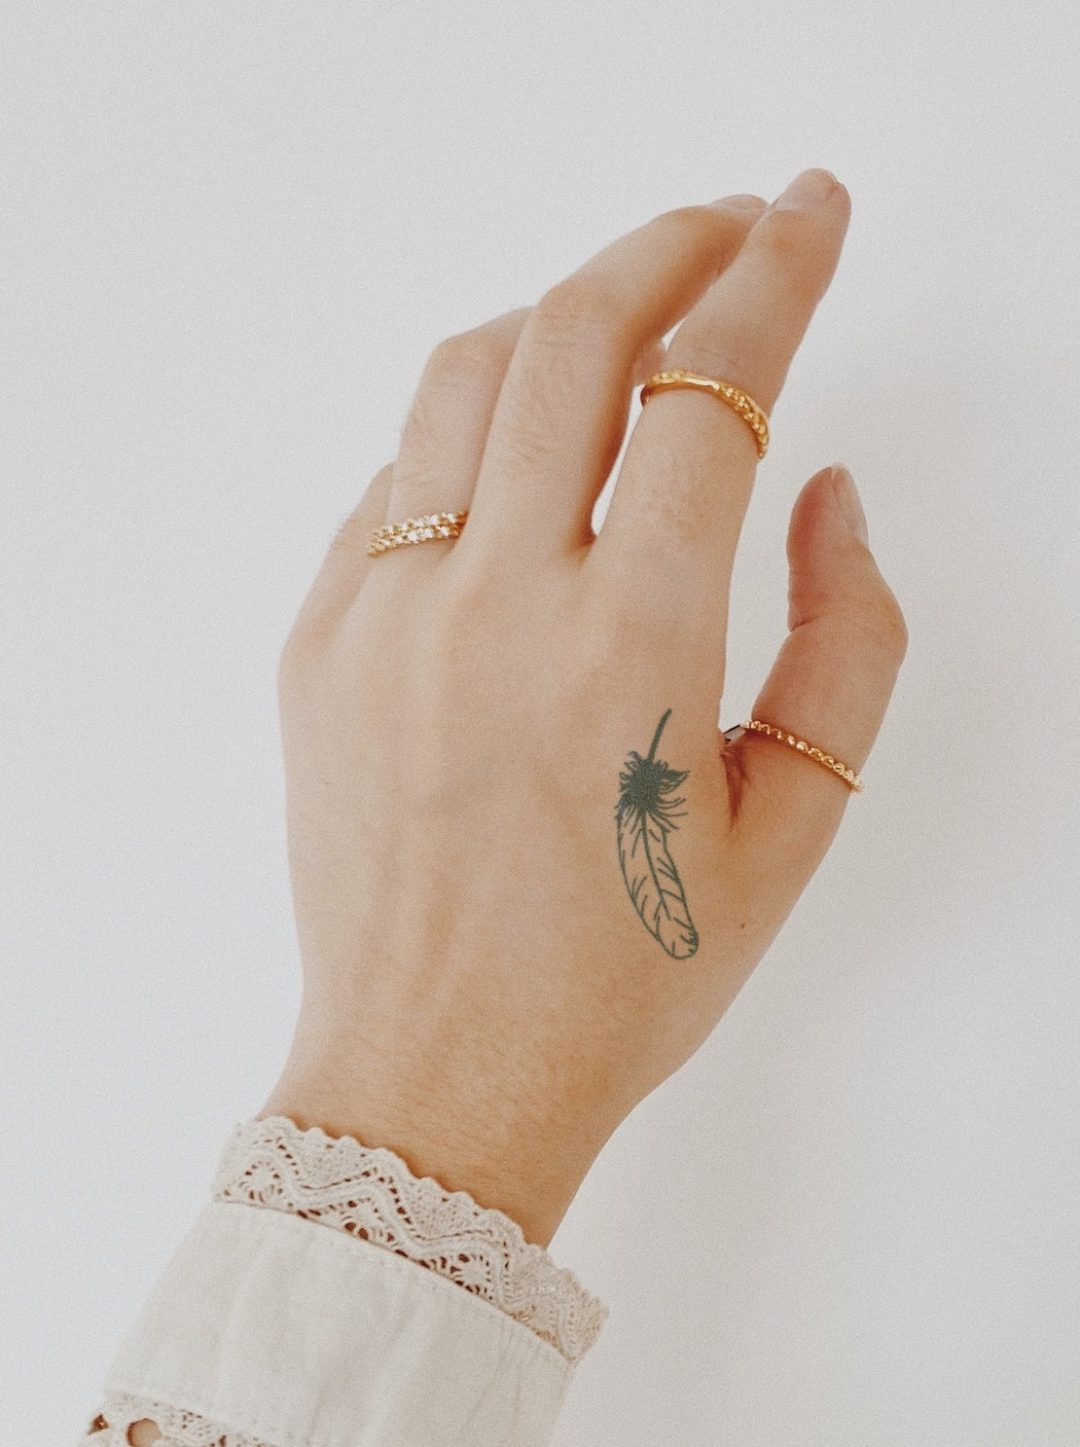 Cute dainty feather tattoo for fingers and hand